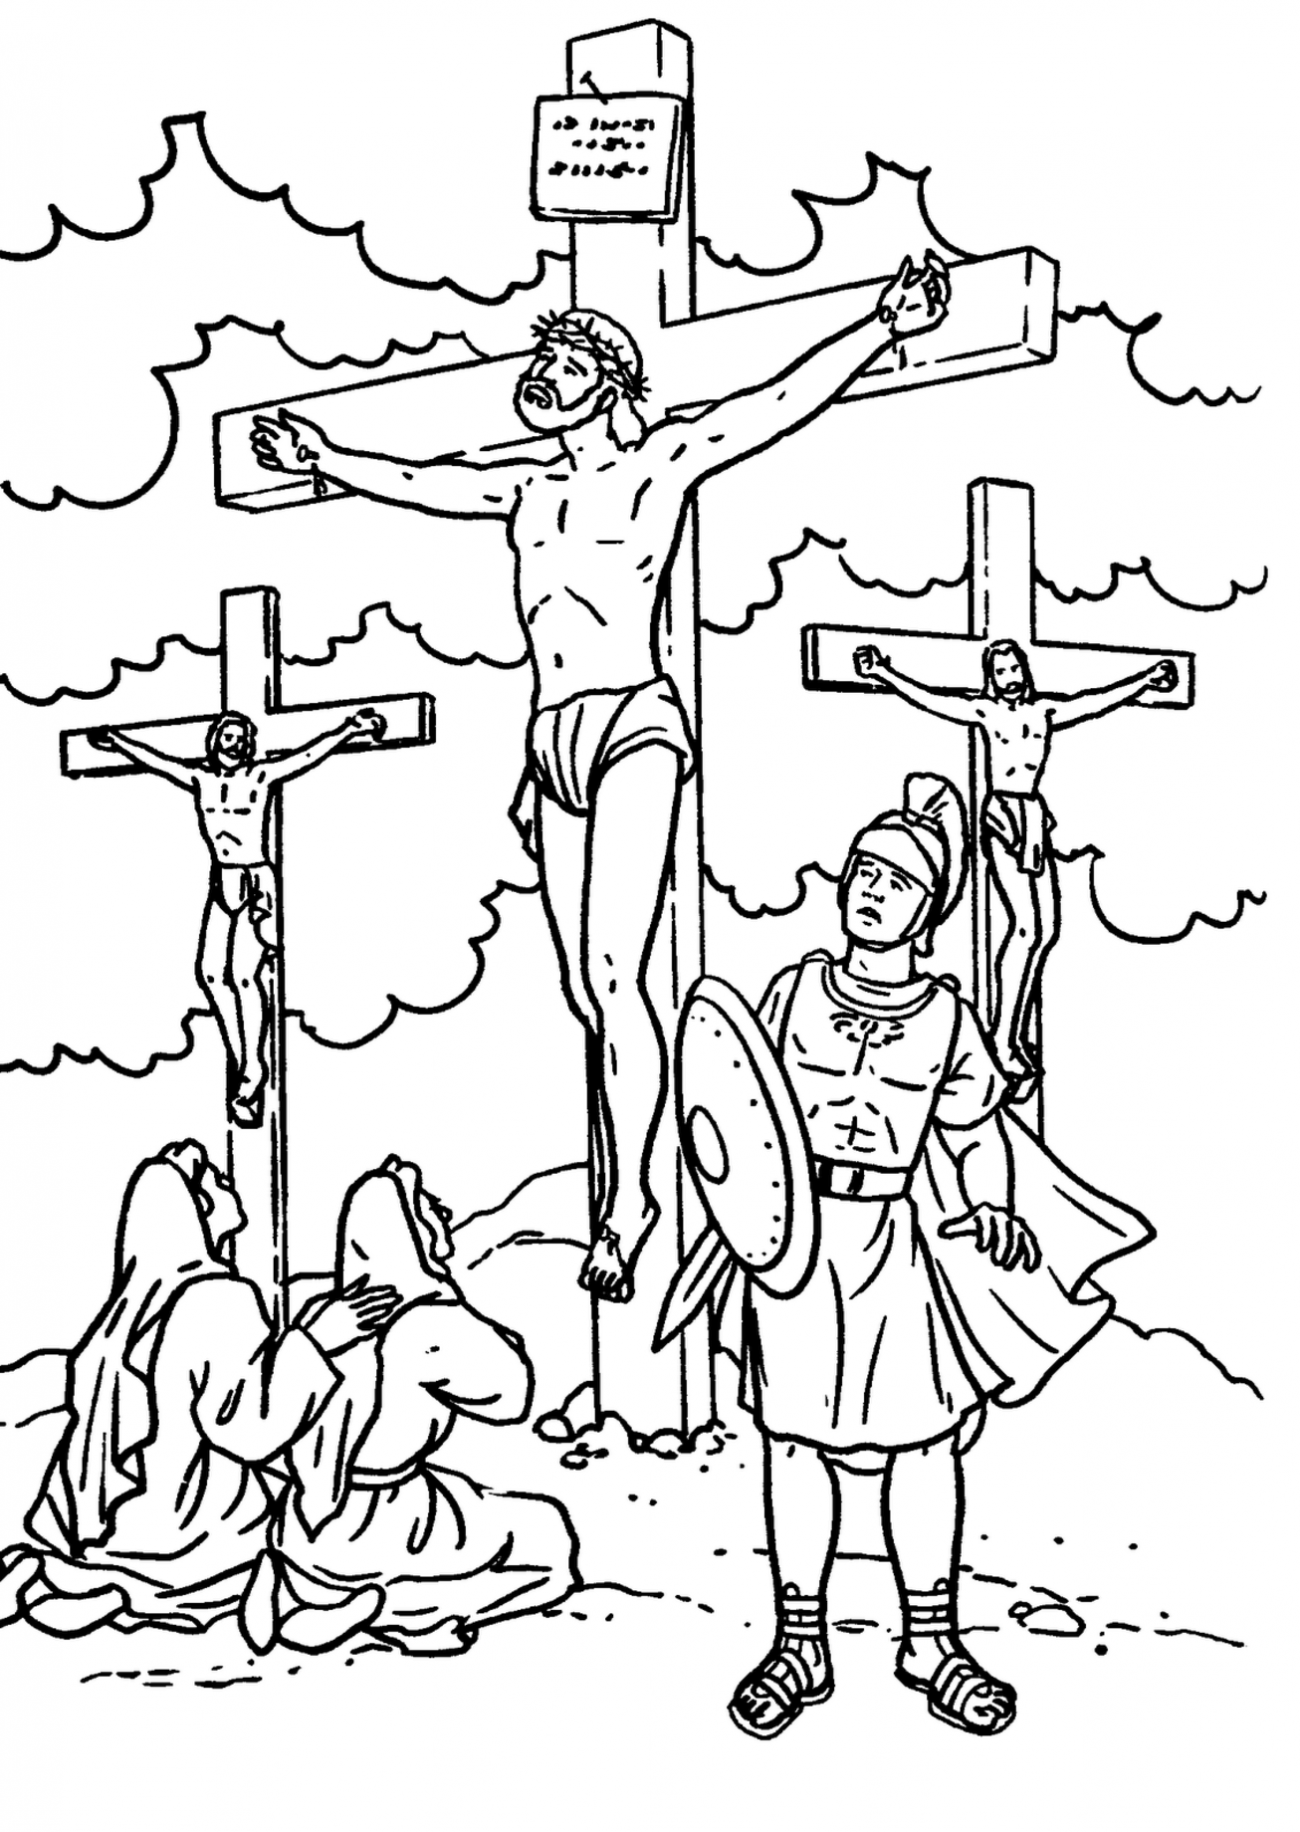 Free coloring pages bible - Bible Coloring Pages Free Large Images